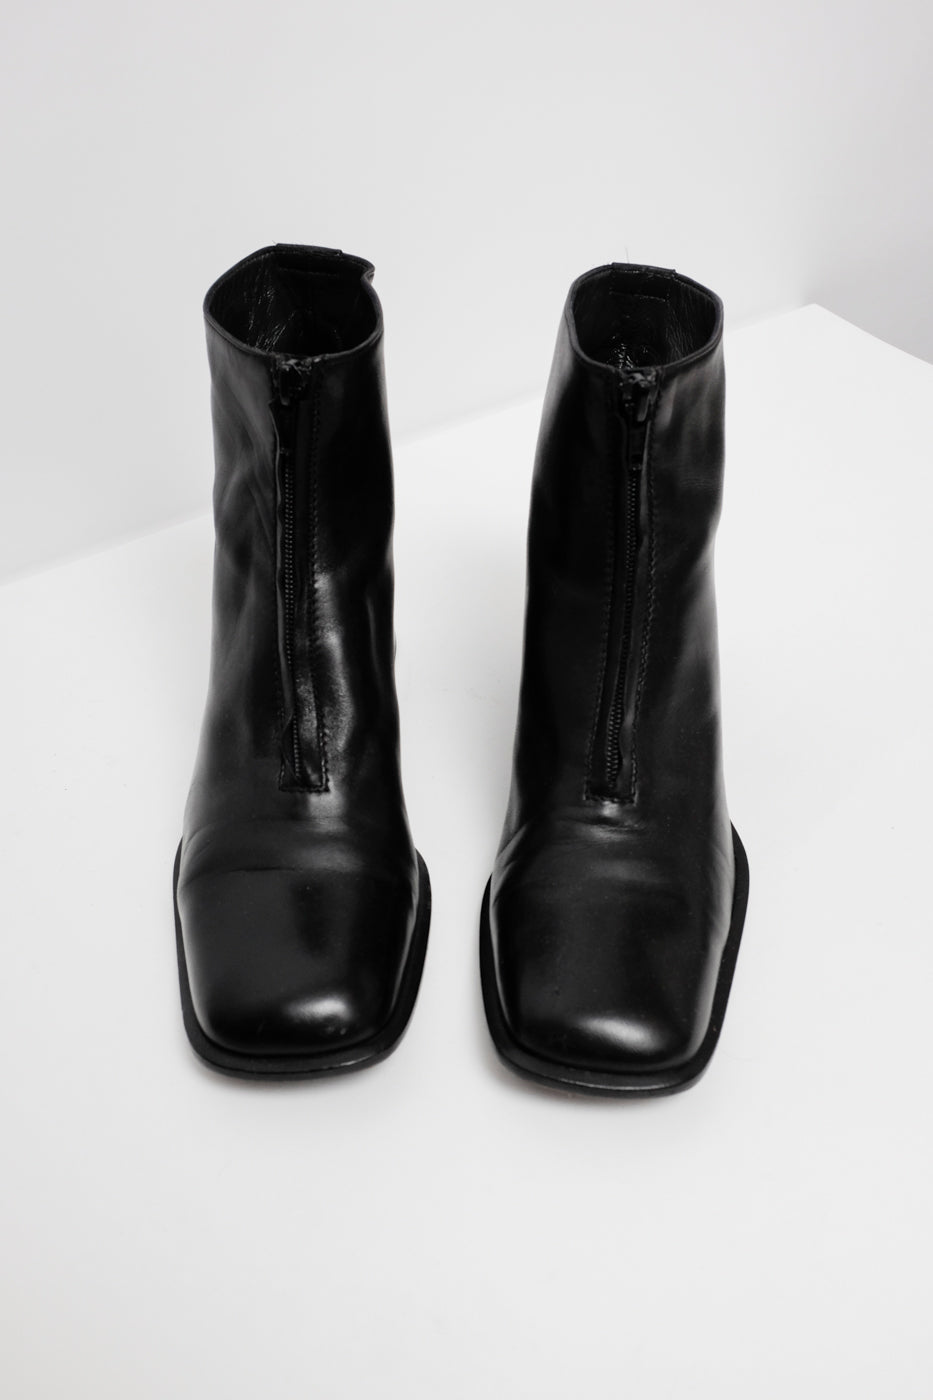 0005_JOOP 39 40 SOFT LEATHER BOOTS